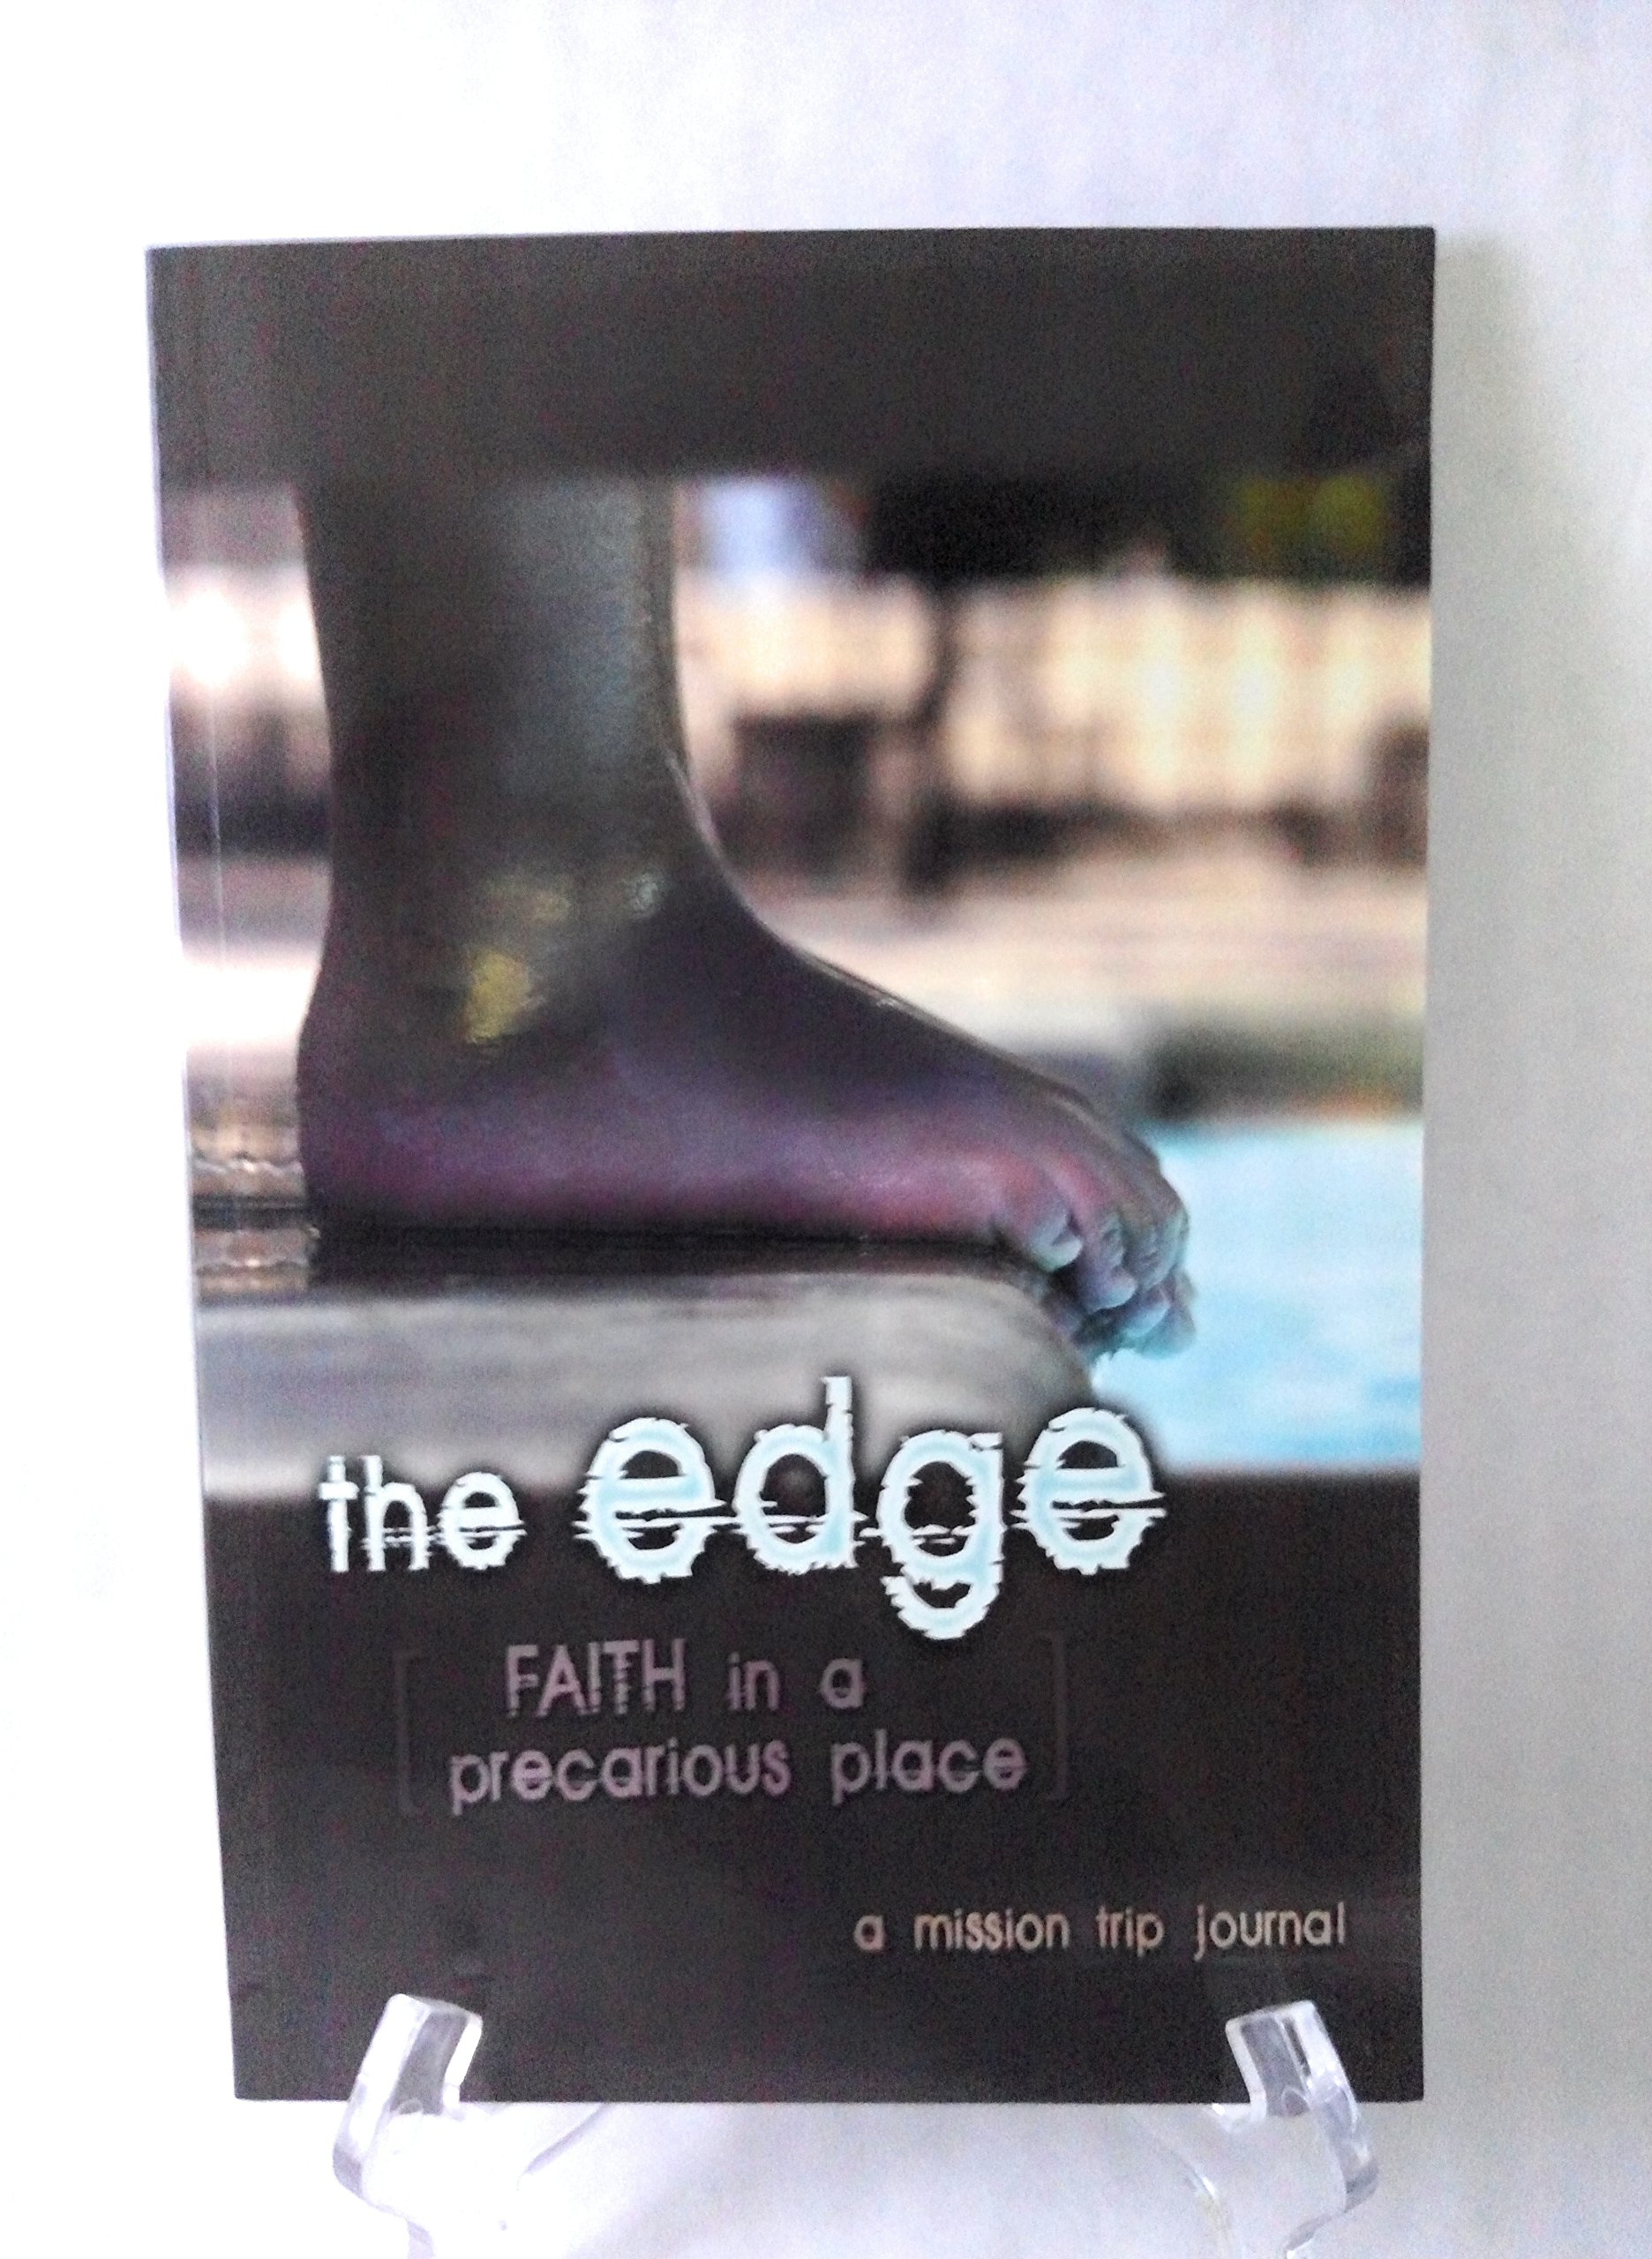 the edge mission trip devotional and journal faith in a precarious